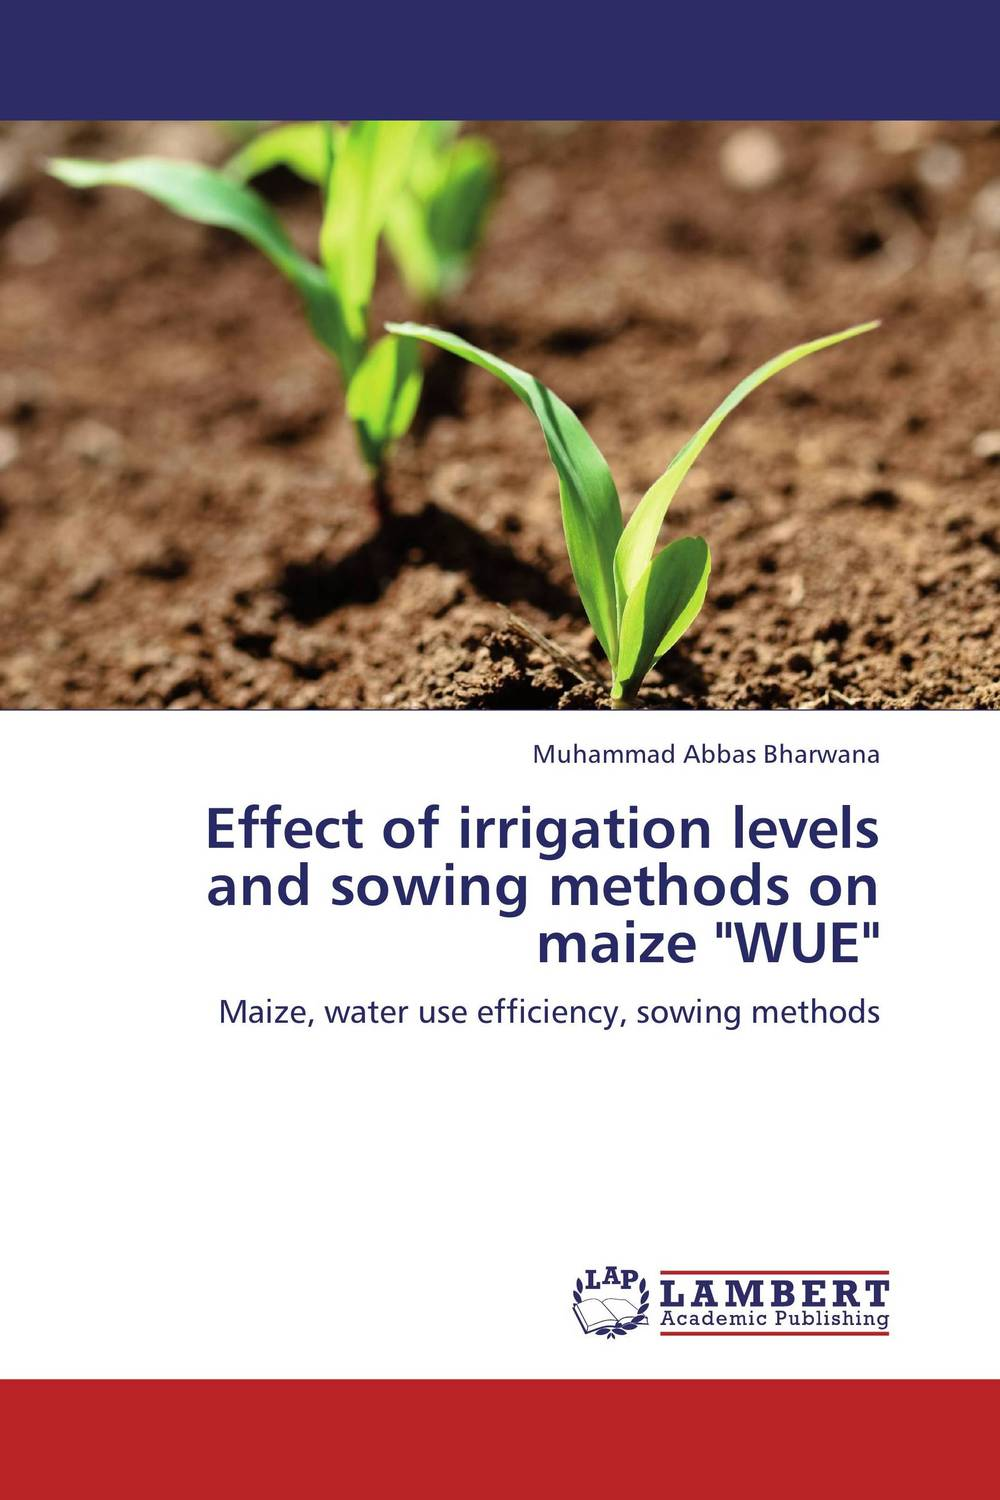 Effect of irrigation levels and sowing methods on maize WUE belousov a security features of banknotes and other documents methods of authentication manual денежные билеты бланки ценных бумаг и документов